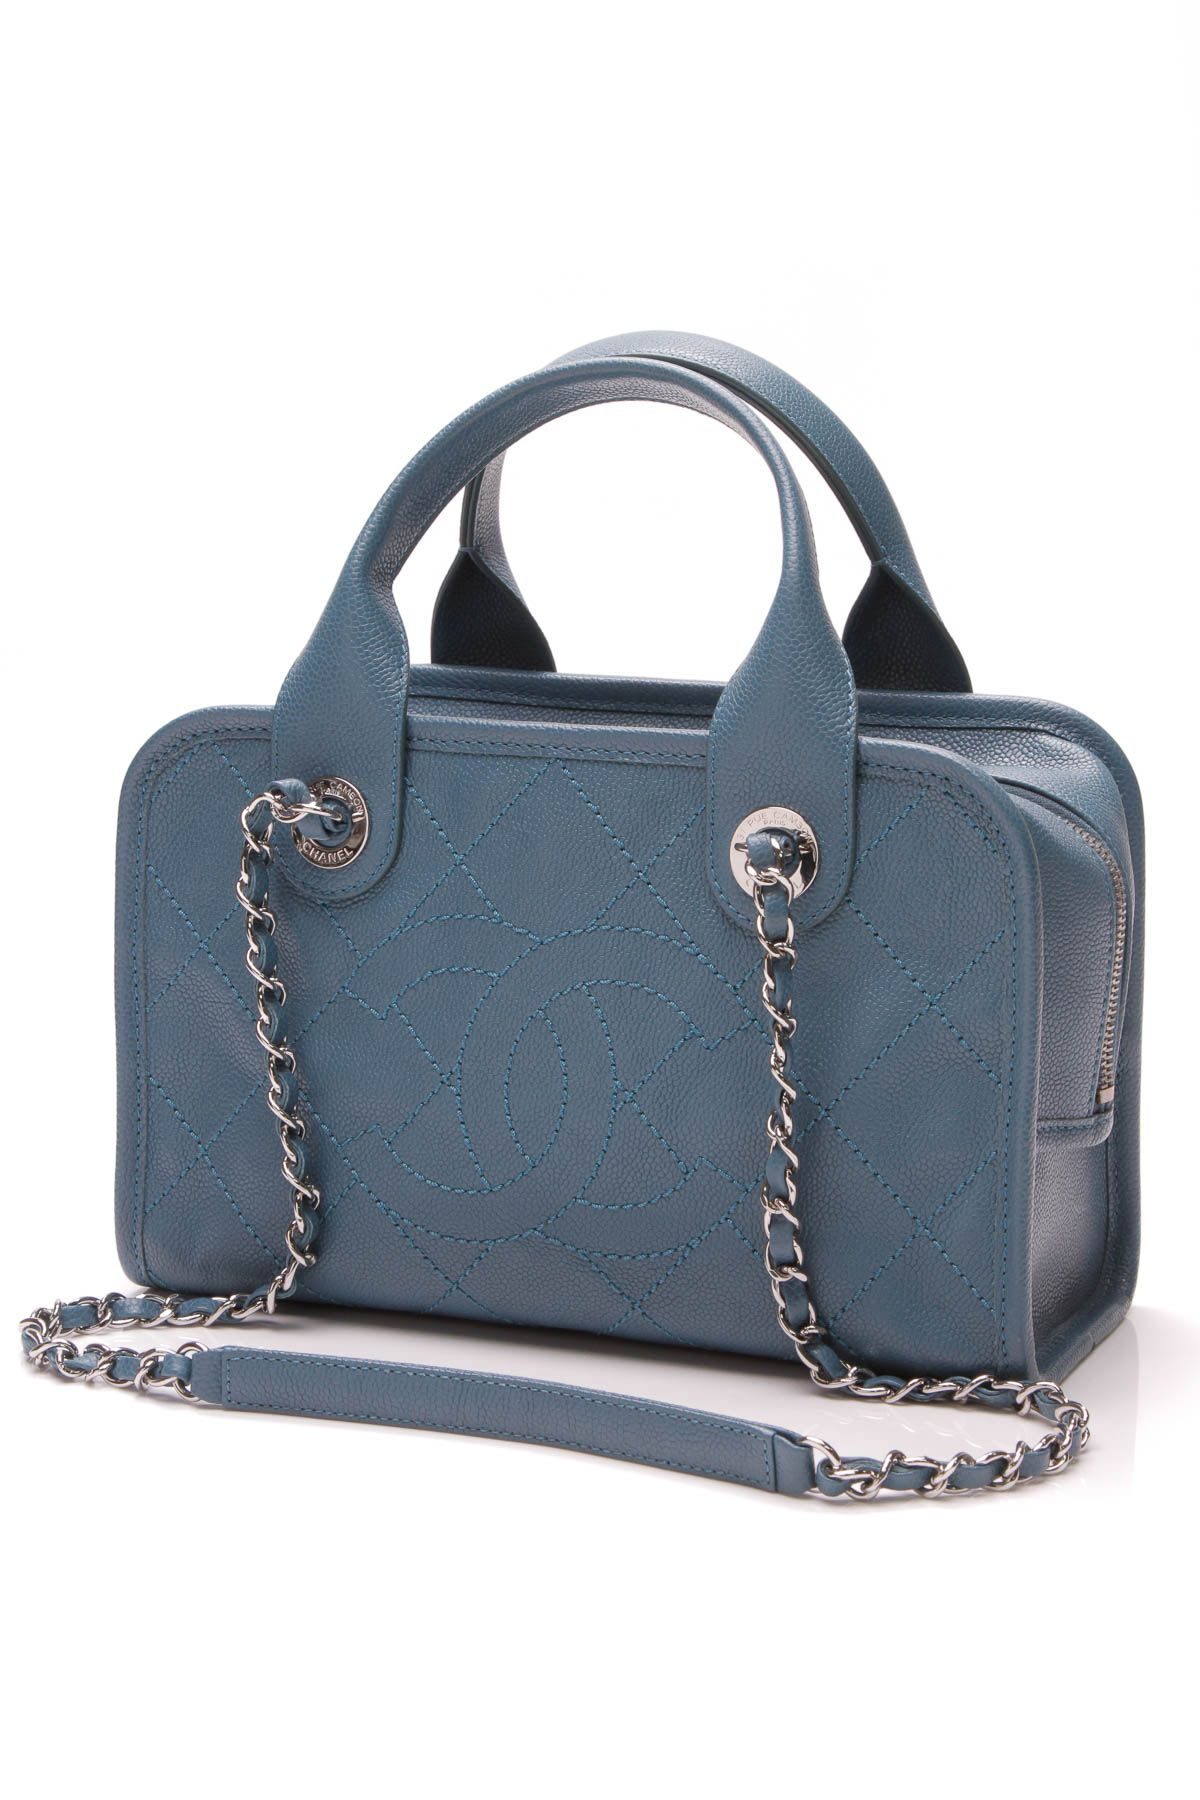 8328b566de5ec8 Small Deauville Bowling Bag - Blue Caviar Leather in 2019 | Crazy ...